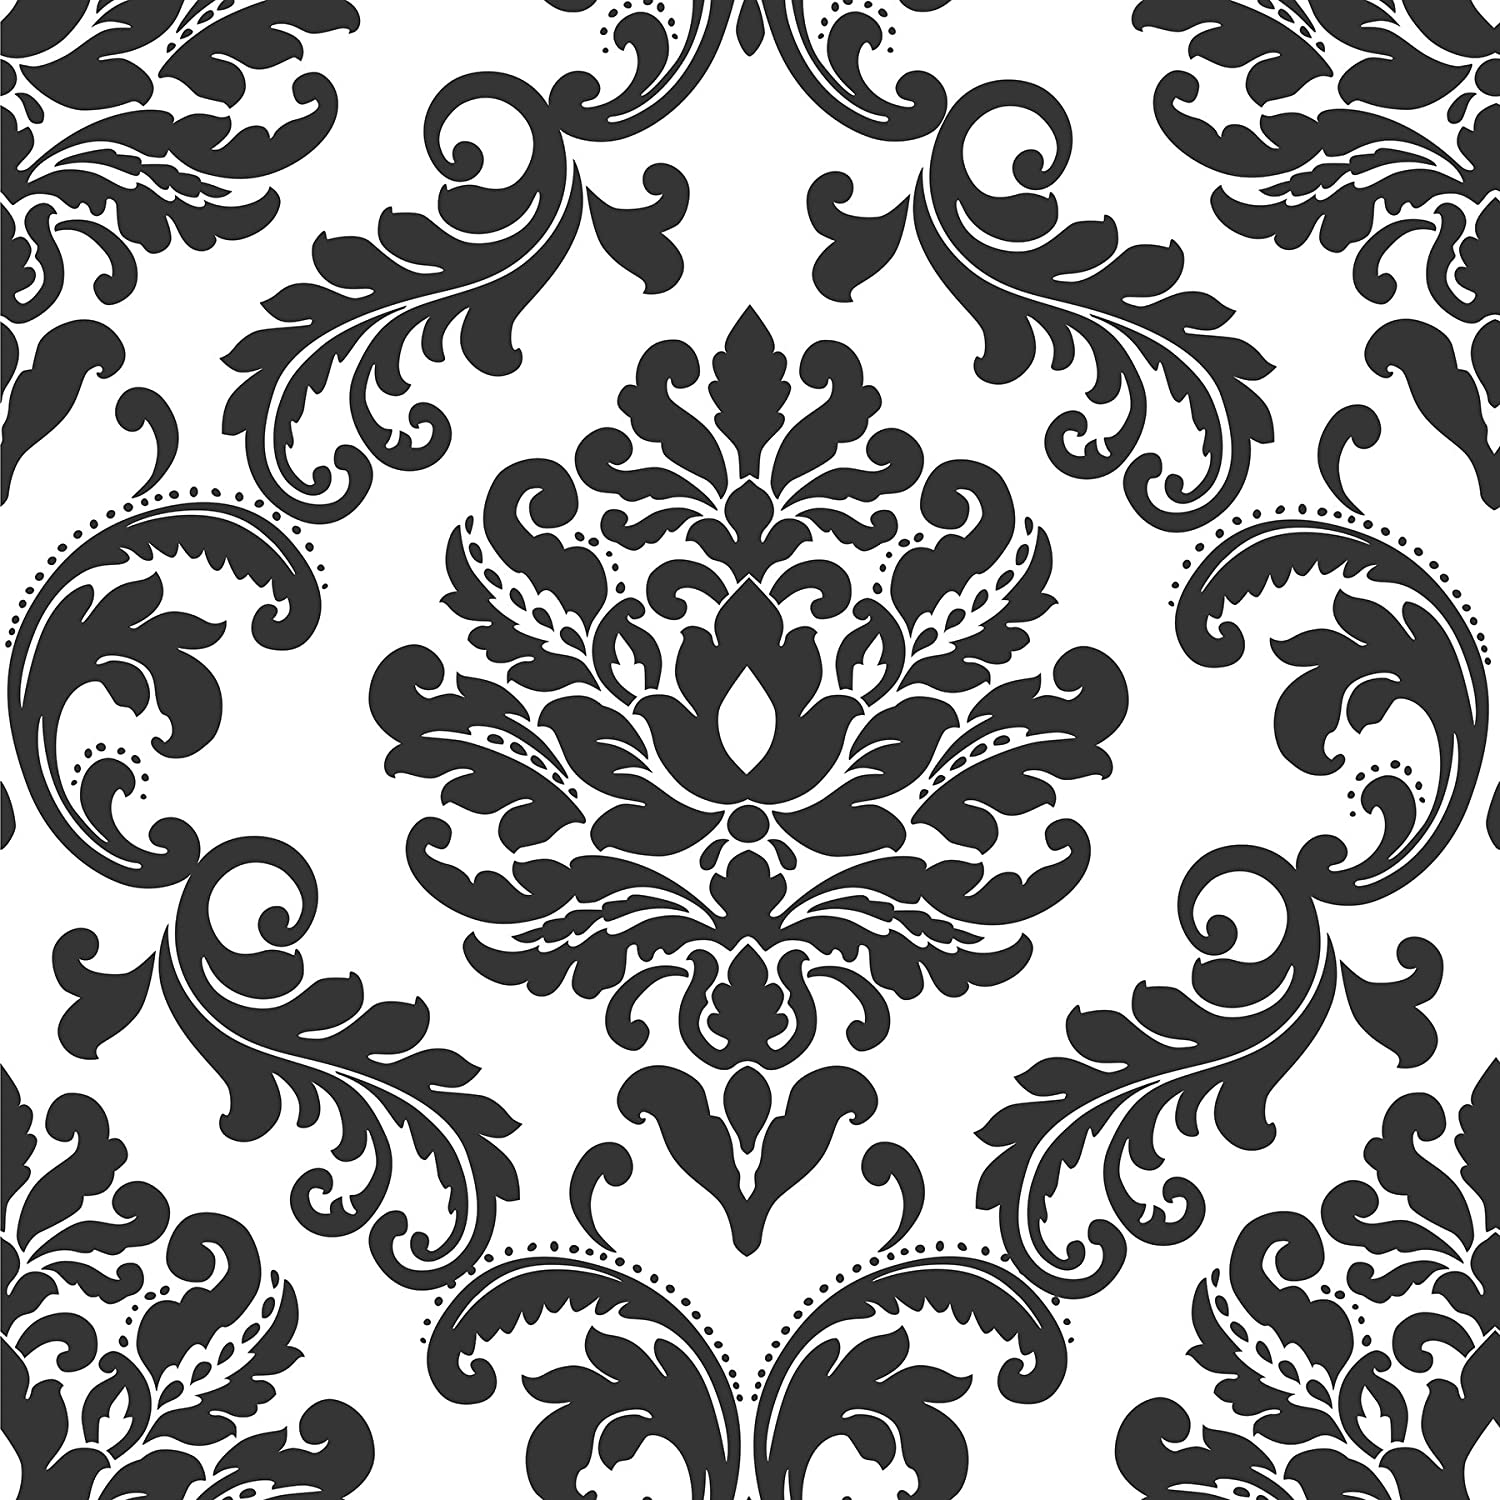 damask vatoz atozdevelopment co